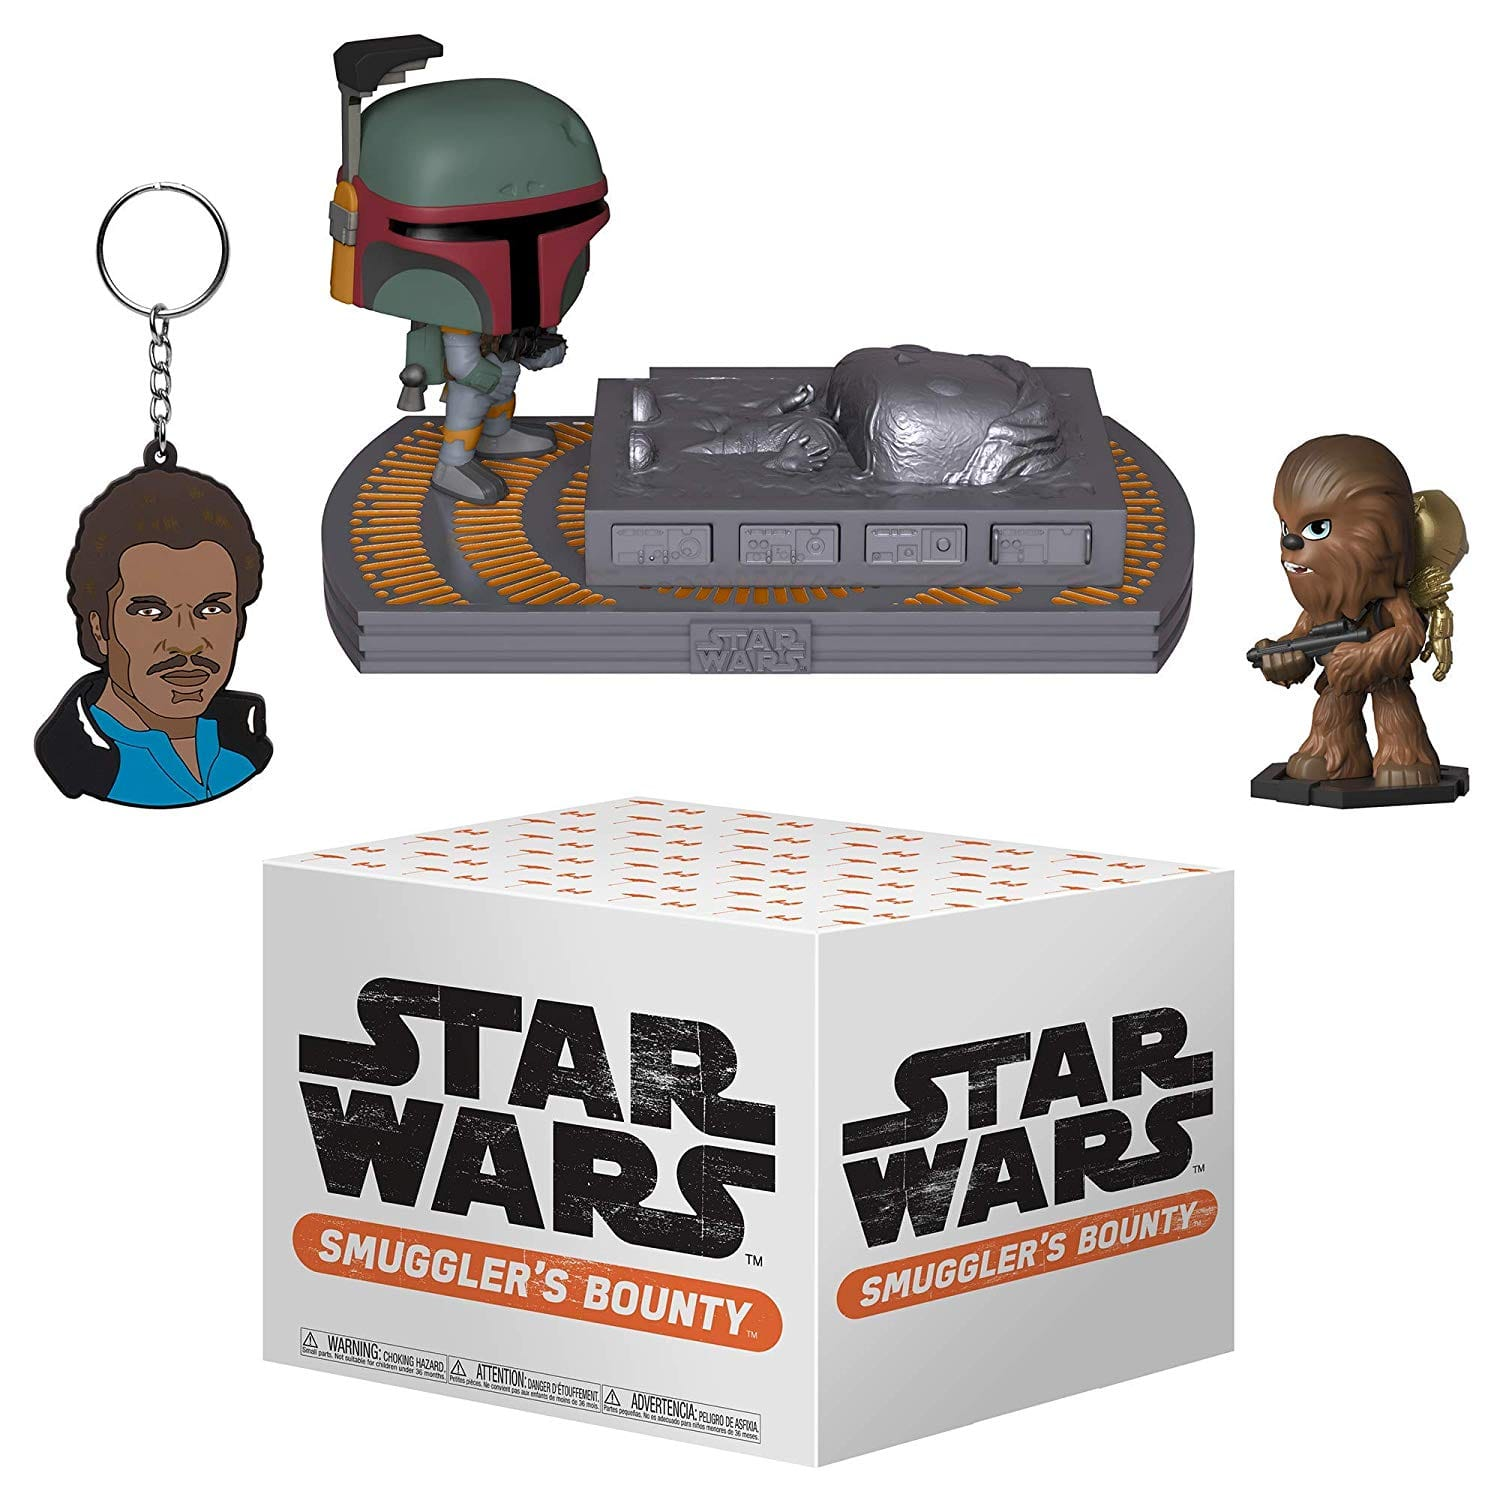 Funko Star Wars Smuggler's Bounty Boxes $12.99 each